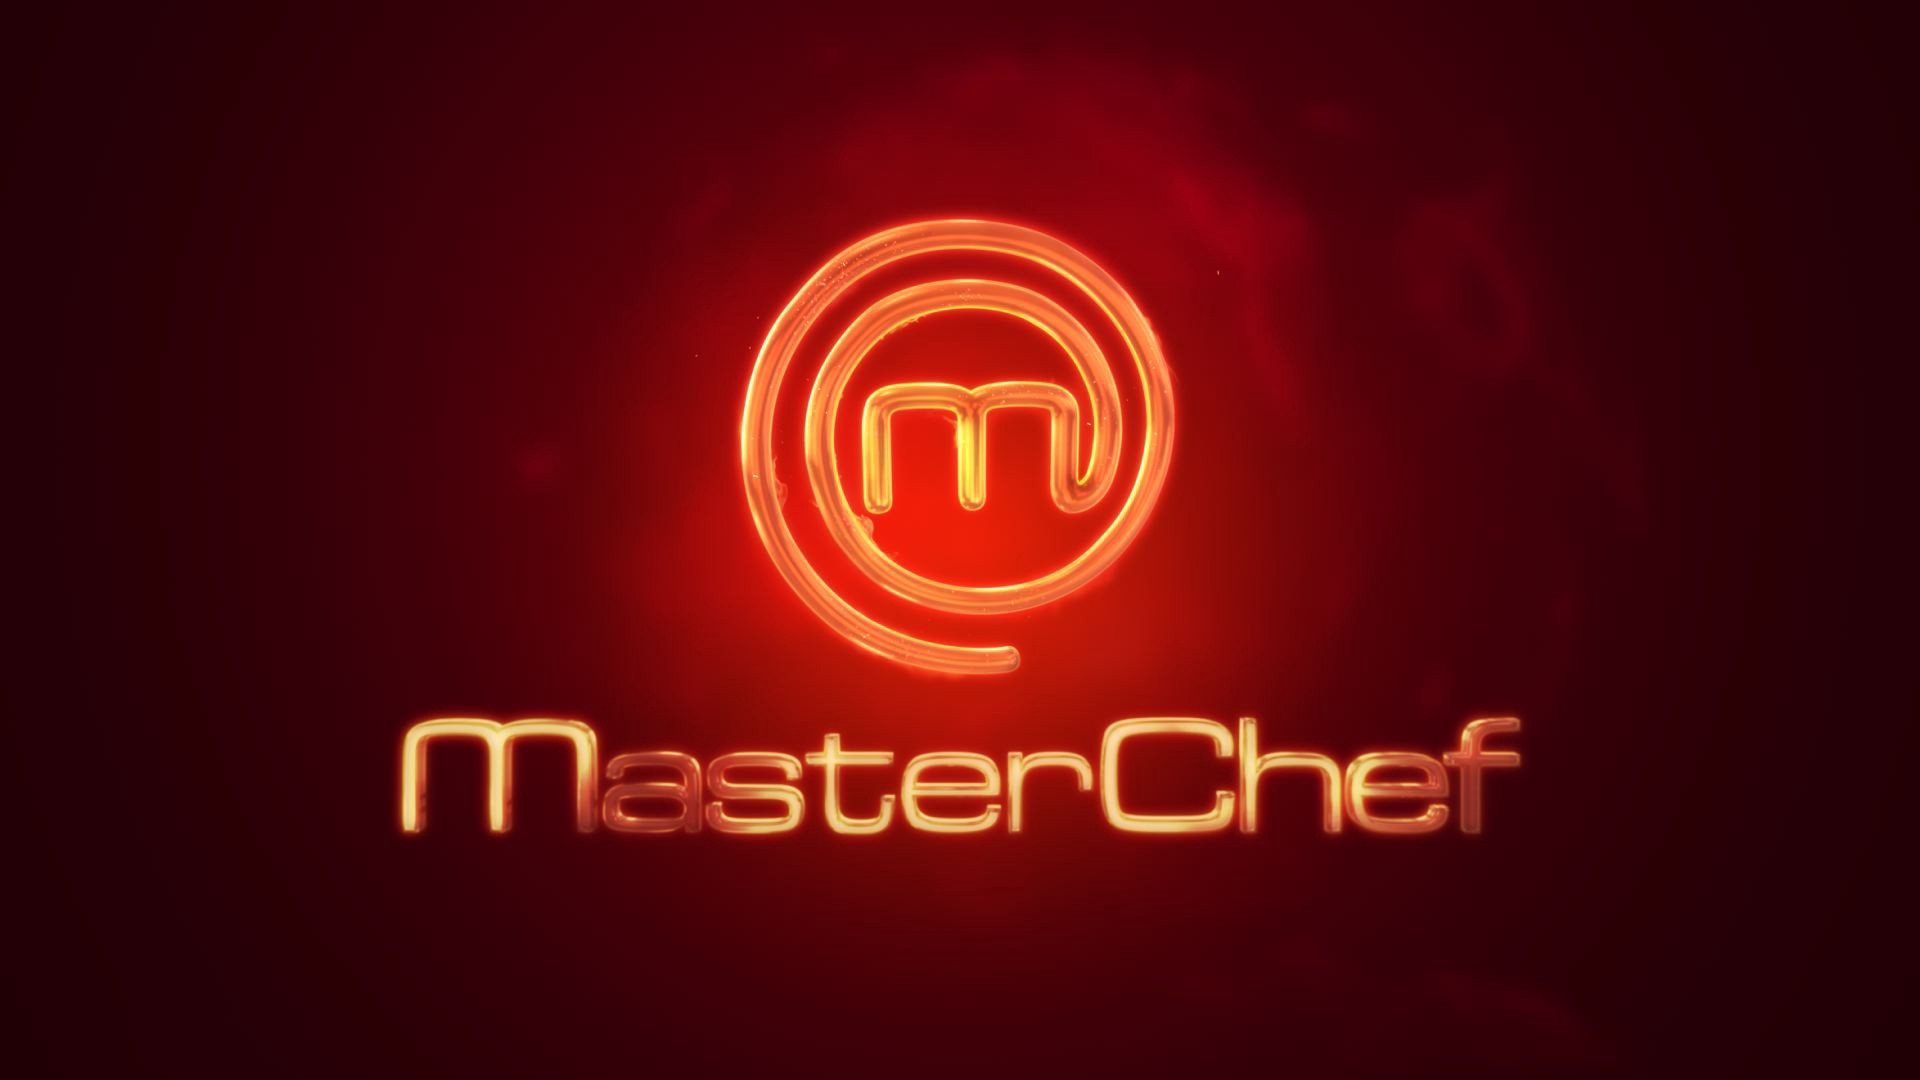 Master Chef: Developing Software Is Like Participating In MasterChef